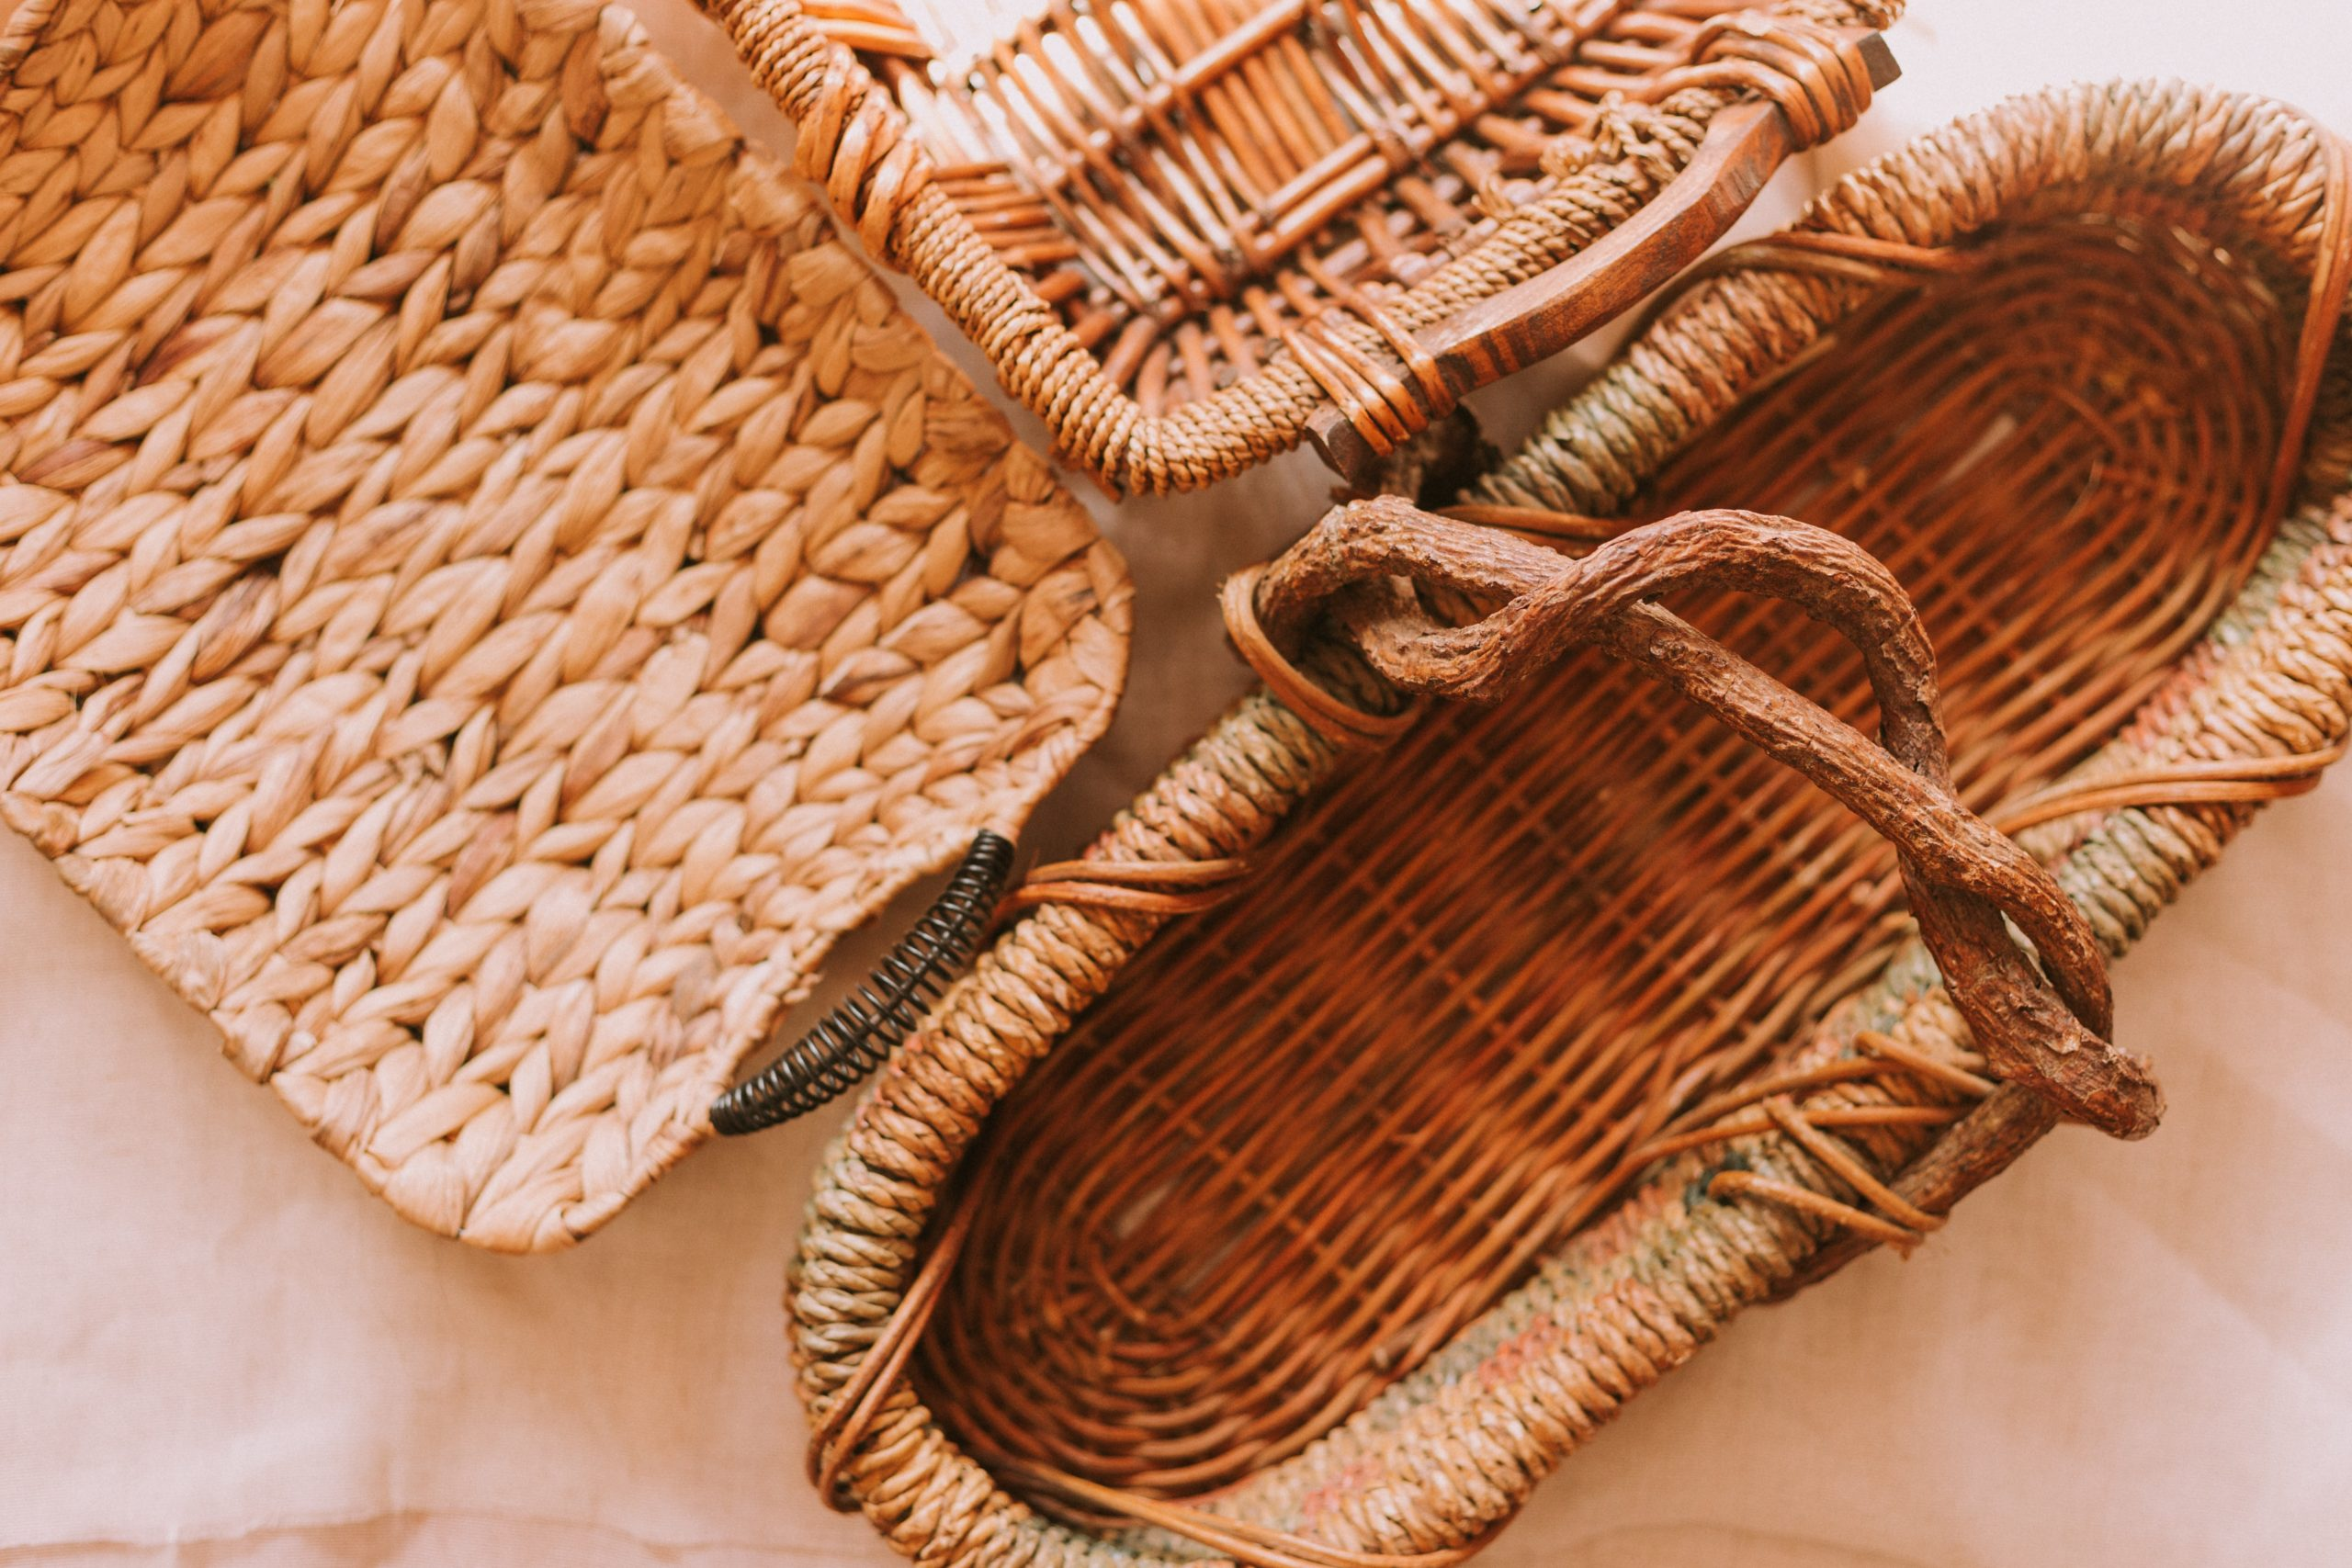 three woven baskets against brown background